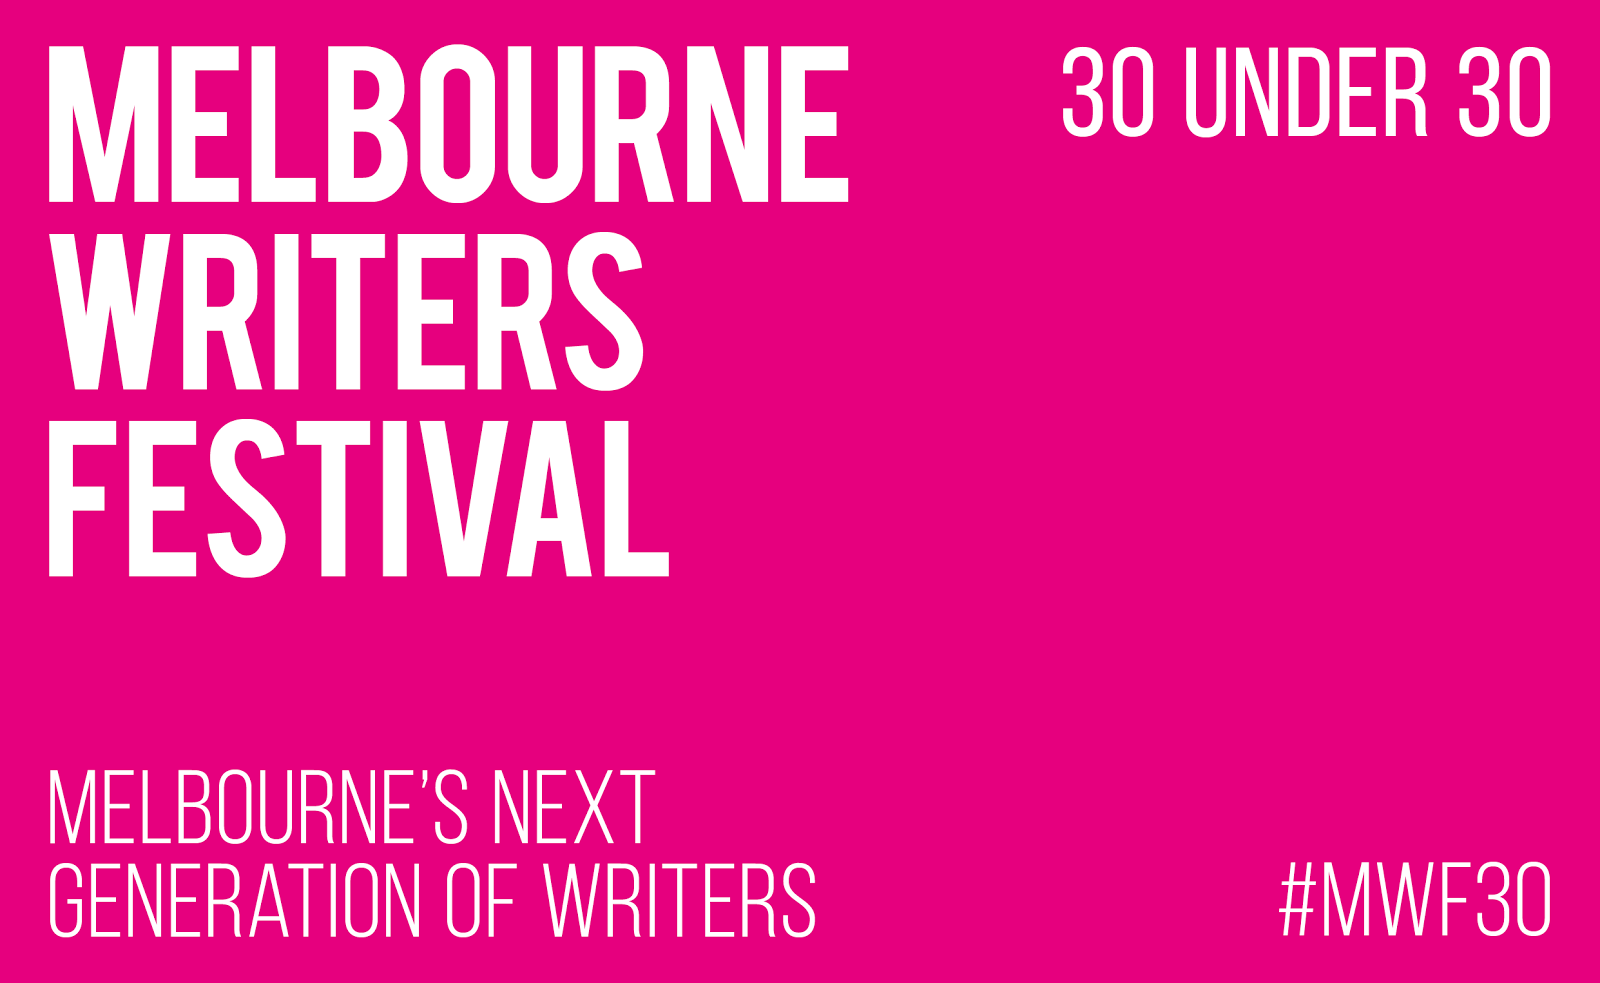 Melbourne Writers Festival '30 Under 30'